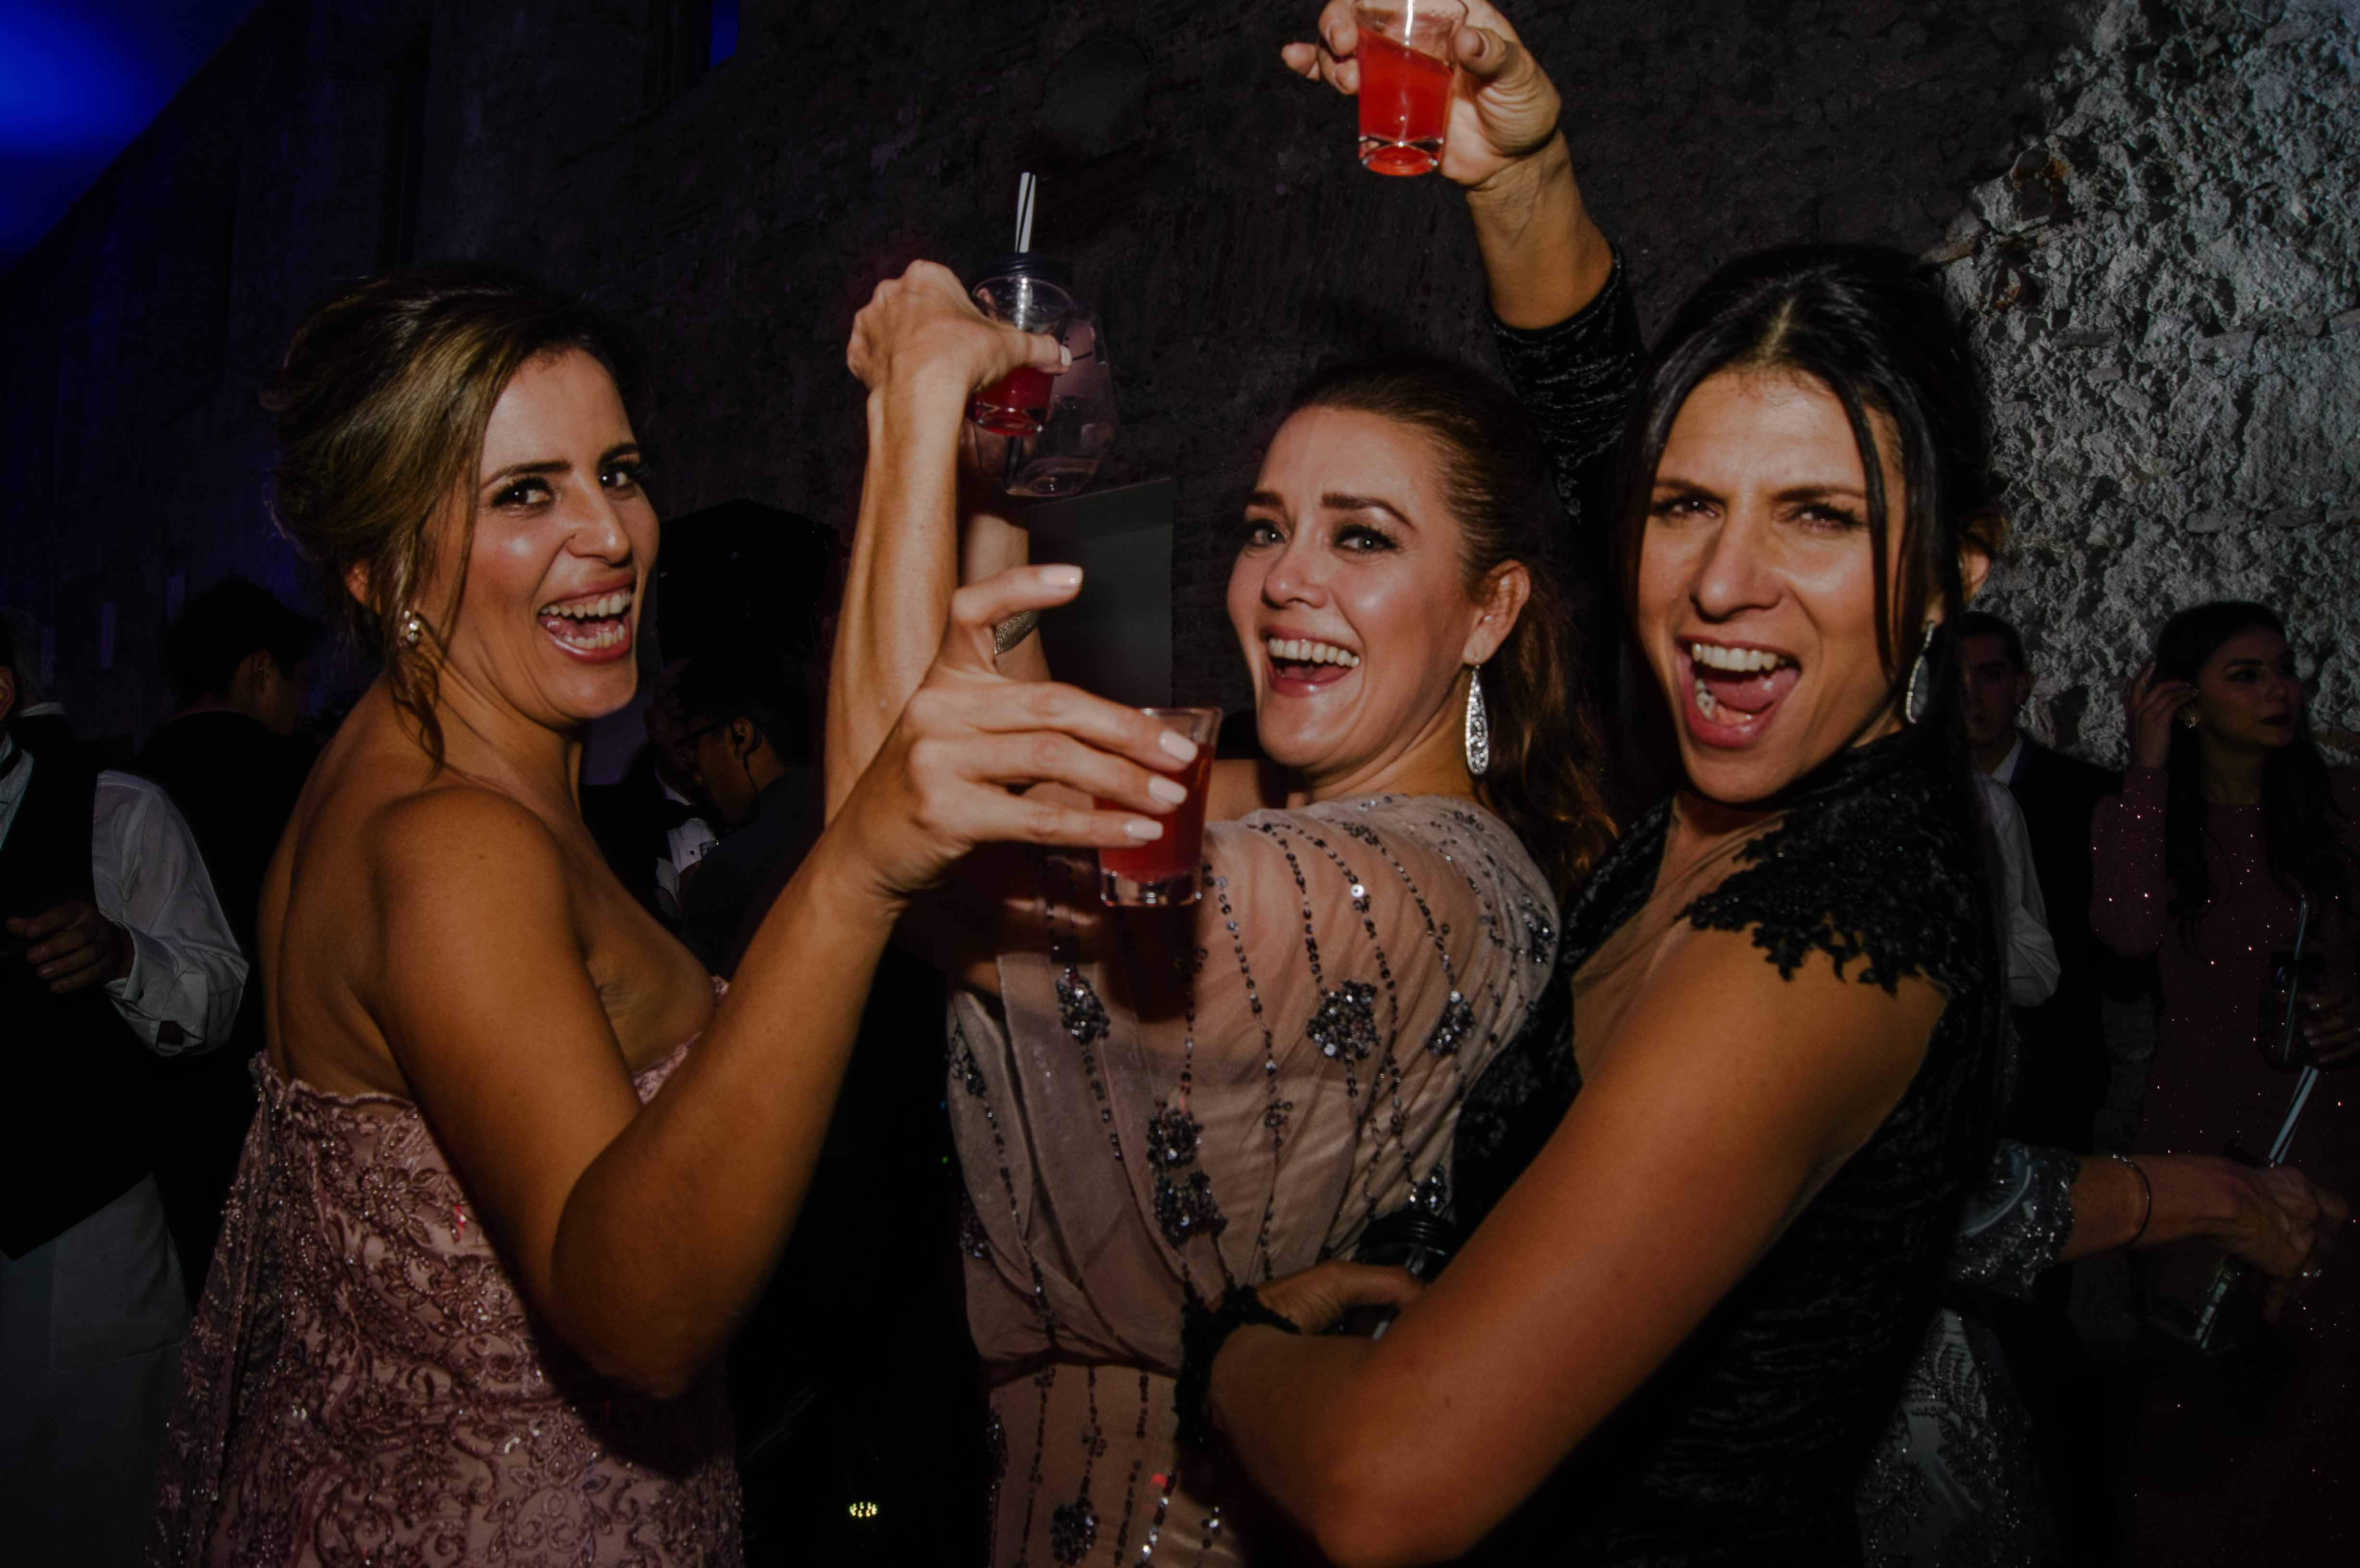 Three women holding red shots while dance in wedding